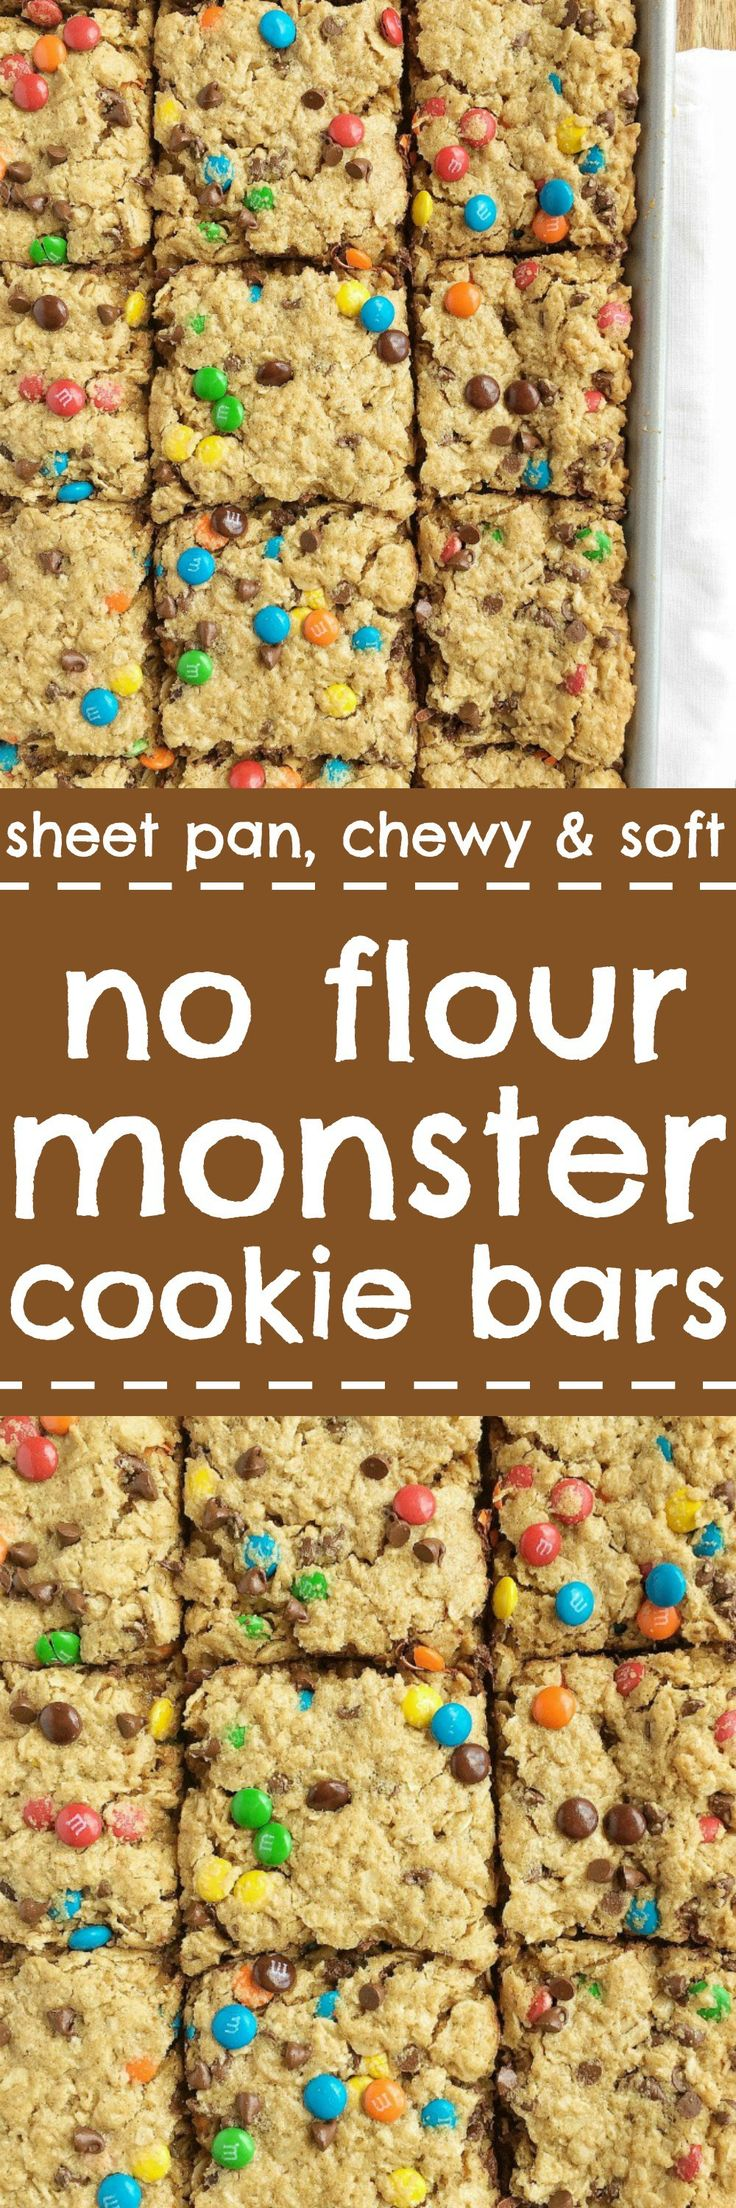 No flour monster cookie bars - Loaded with peanut butter, oats, chocolate chips, m&m's. These no flour monster cookie bars bake on a sheet pan and are the most delicious cookie bar you'll ever have. Plus, there is NO FLOUR! My most popular recipe that everyone LOVES | togetherasfamily.com